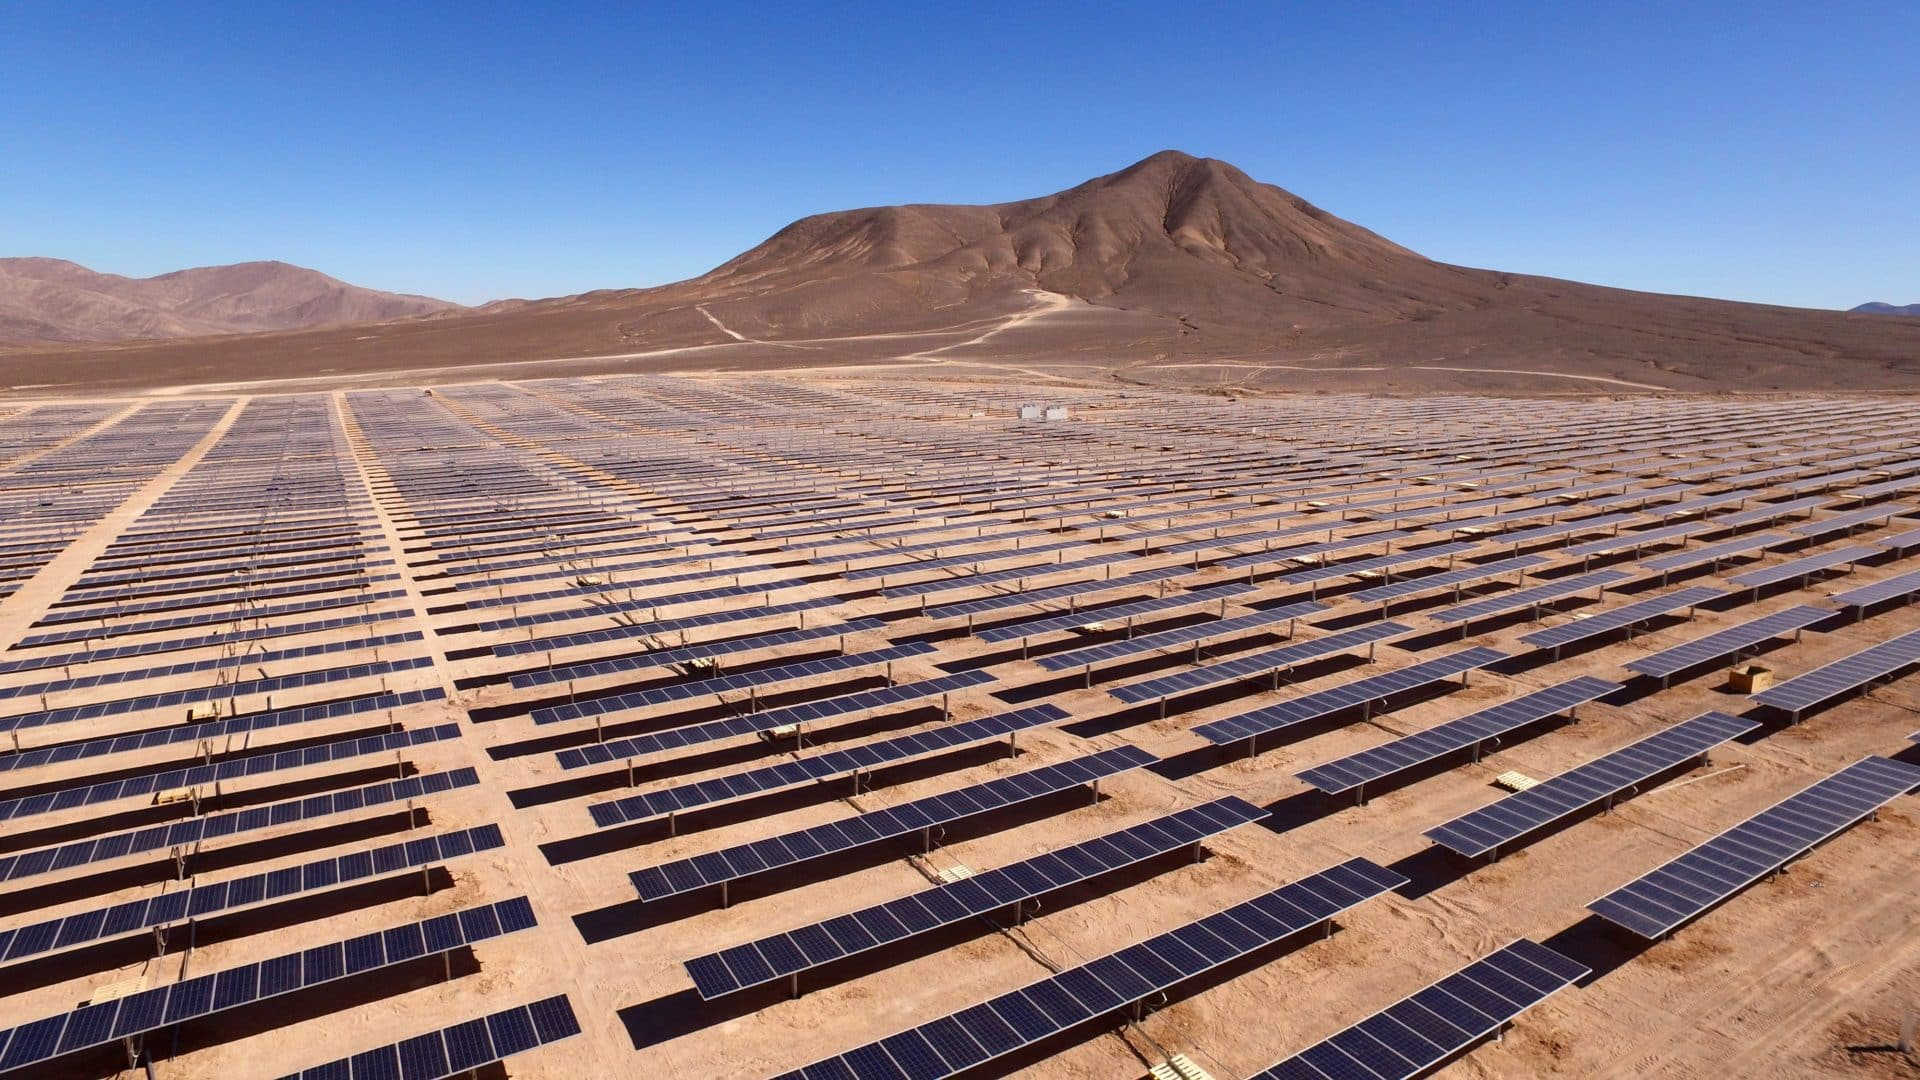 A large solar array owned by Statoil